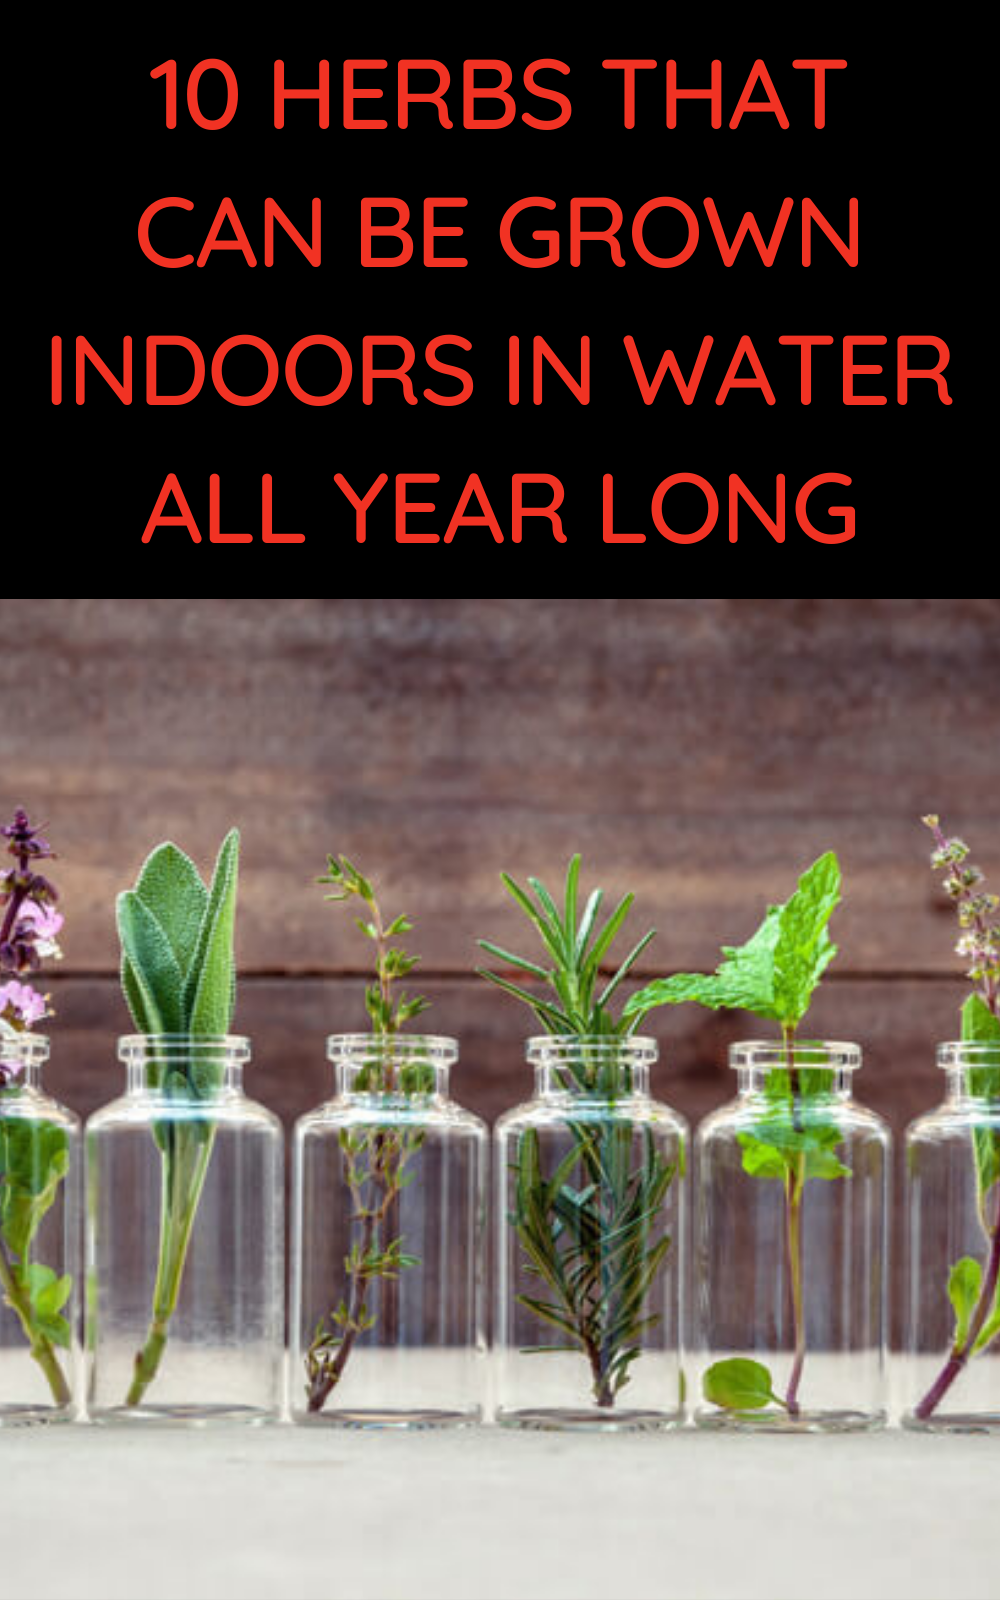 10 Herbs That Can Be Grown Indoors in Water All Ye